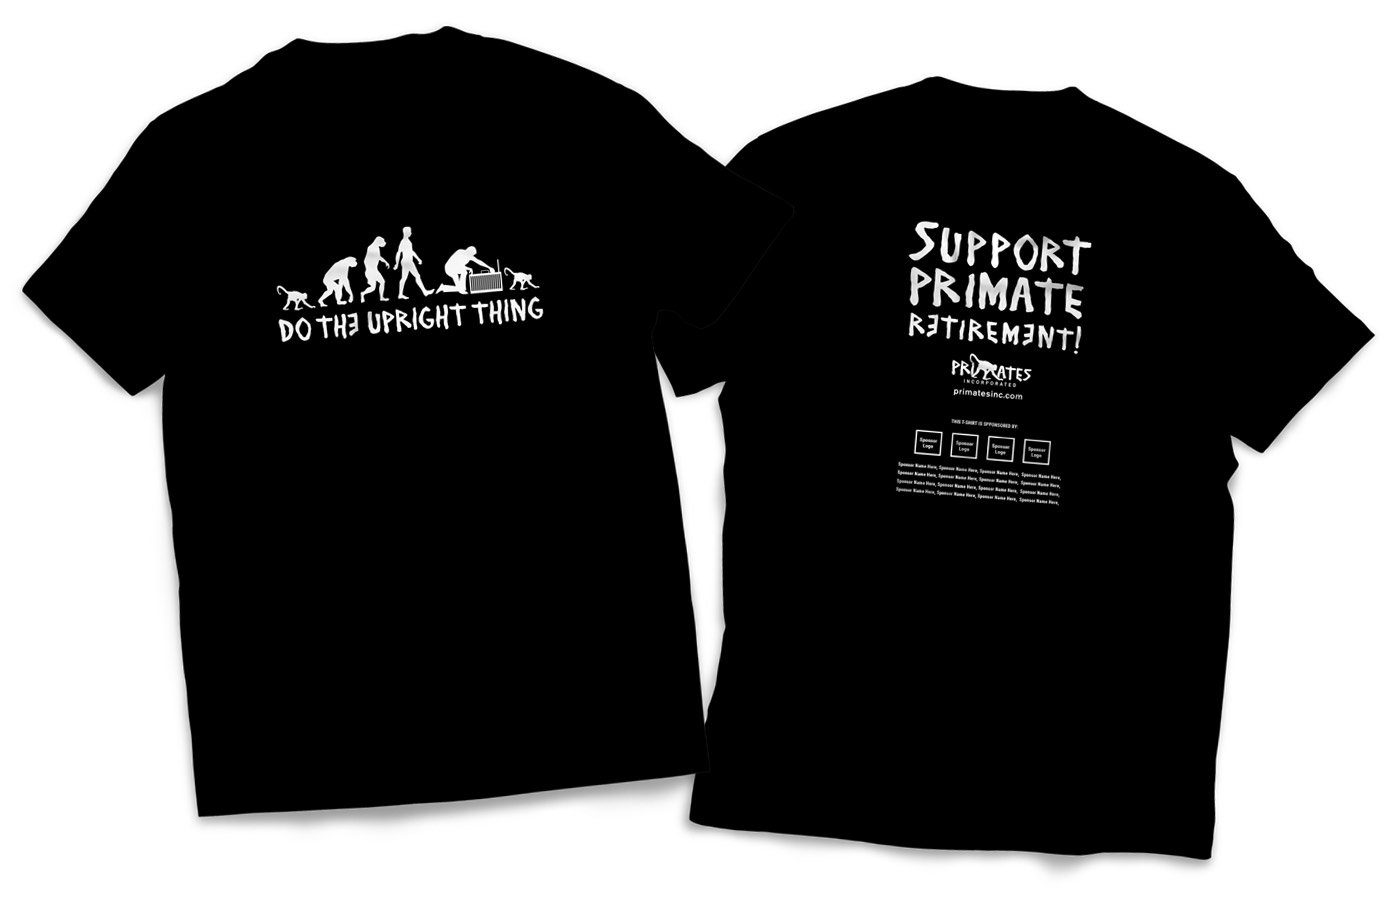 Primates Inc. Upright t-shirt design